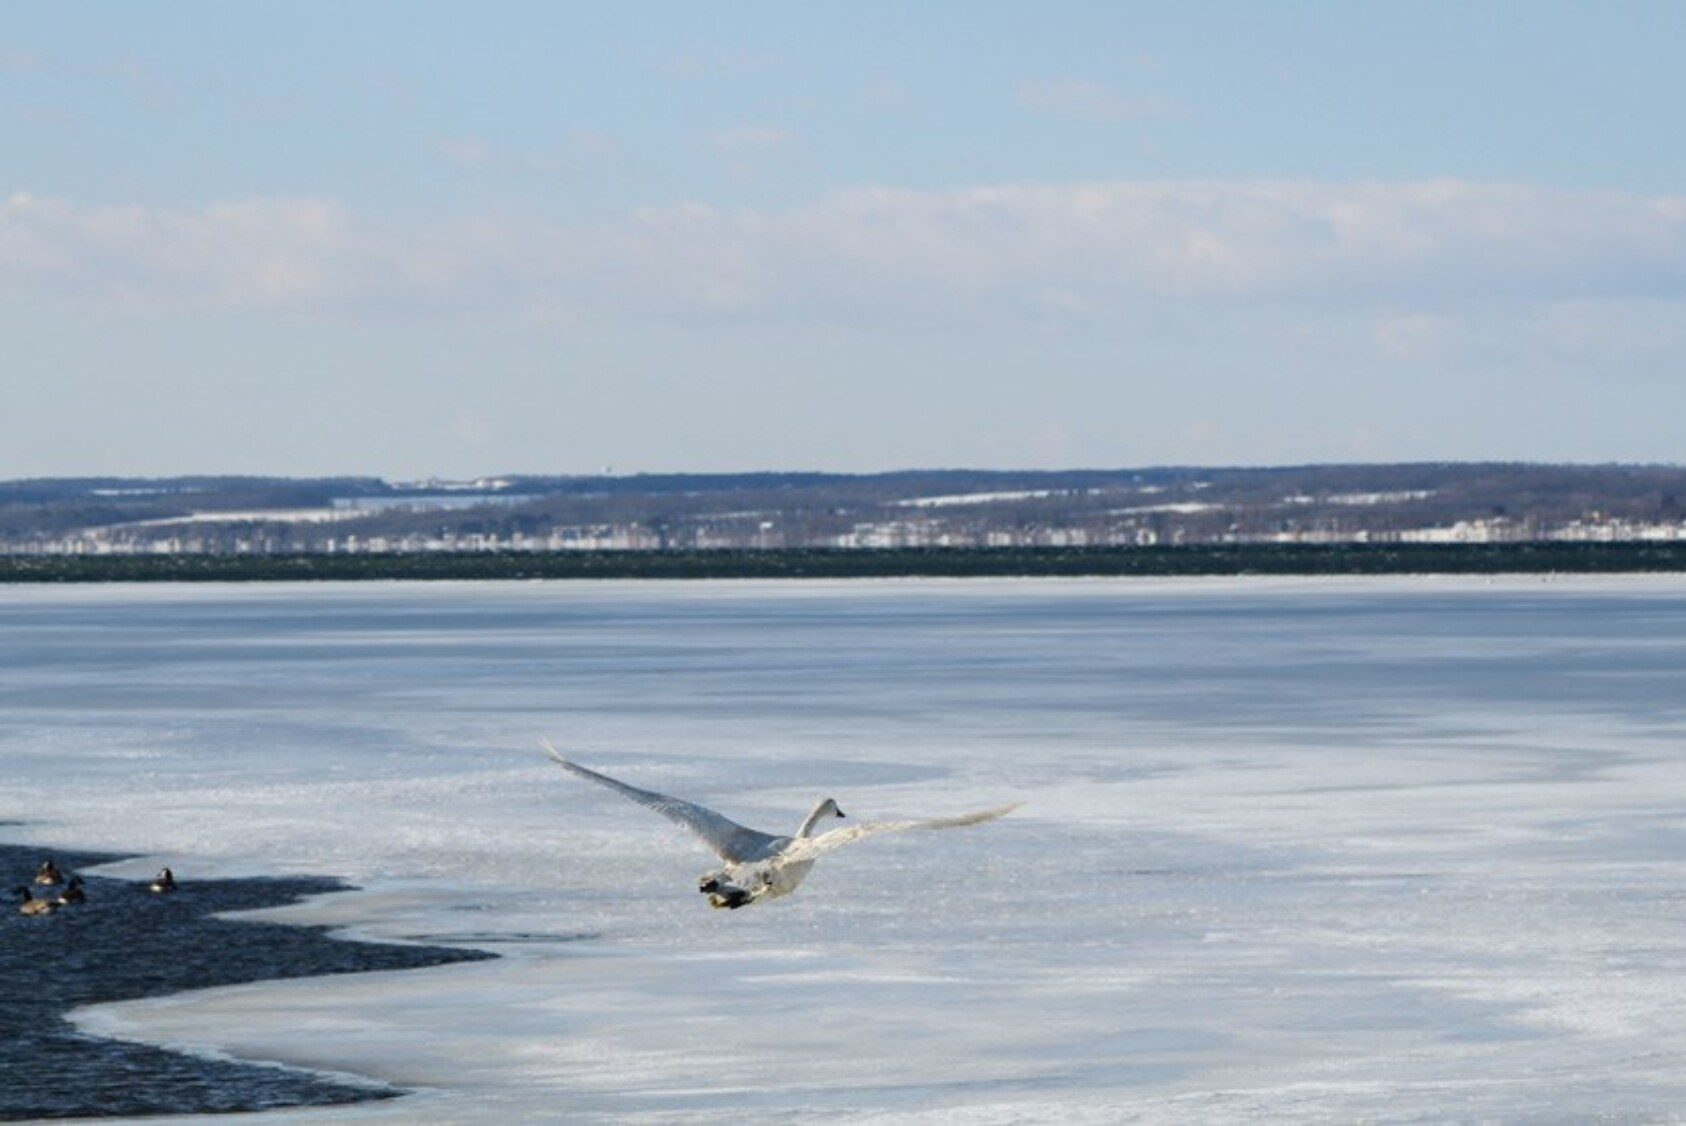 The Tundra Swan was eventually released where it was originally found on Cayuga Lake.